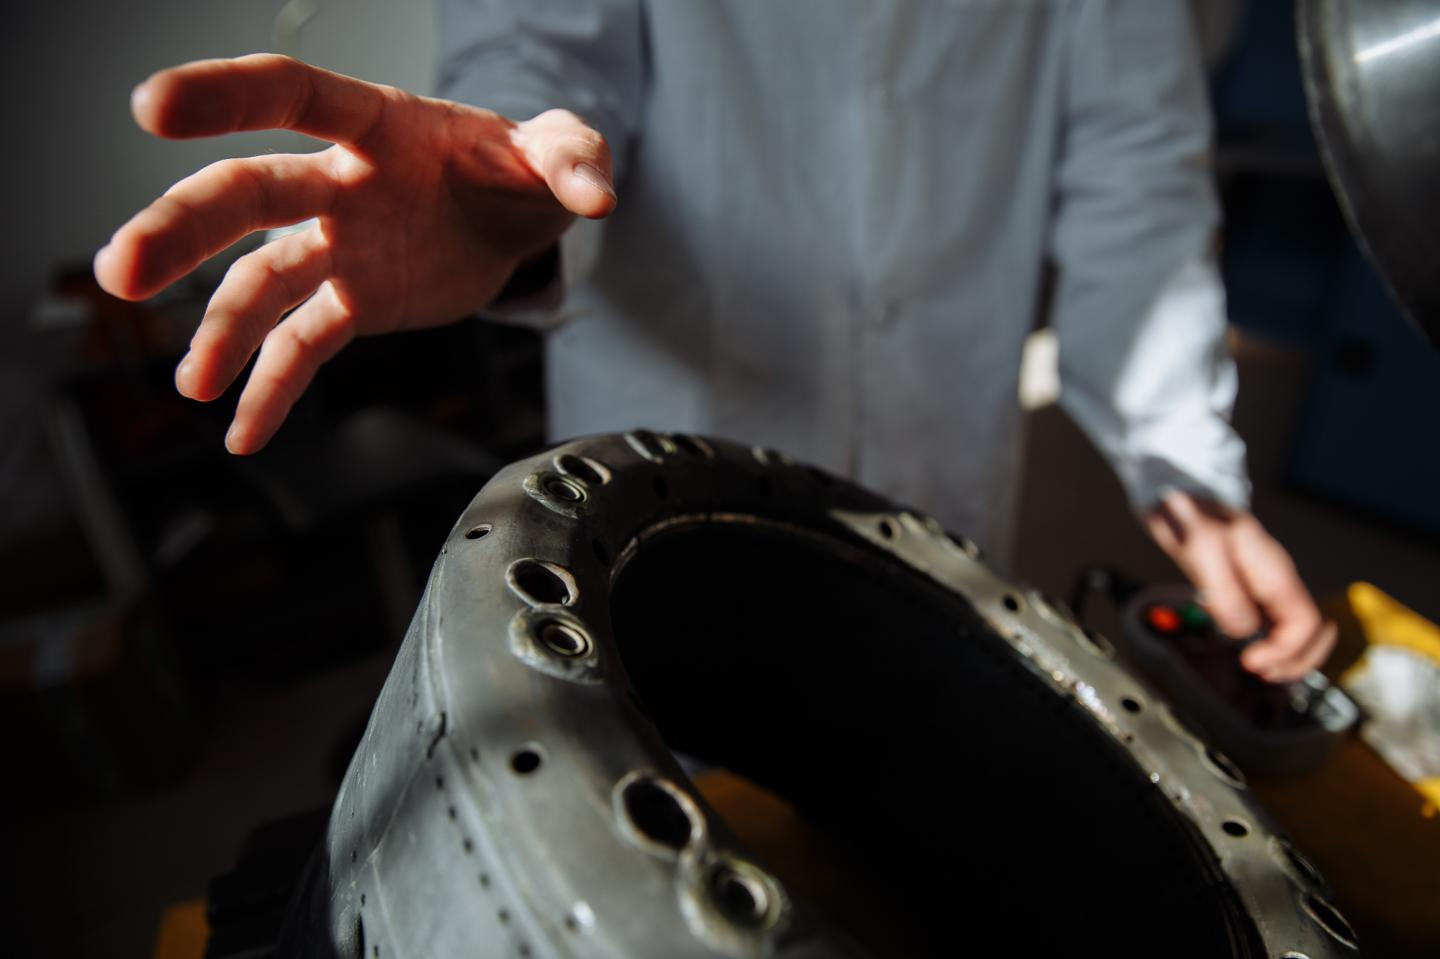 A Serial Gas Turbine Engine With a 3D-Printed Combustion Chamber